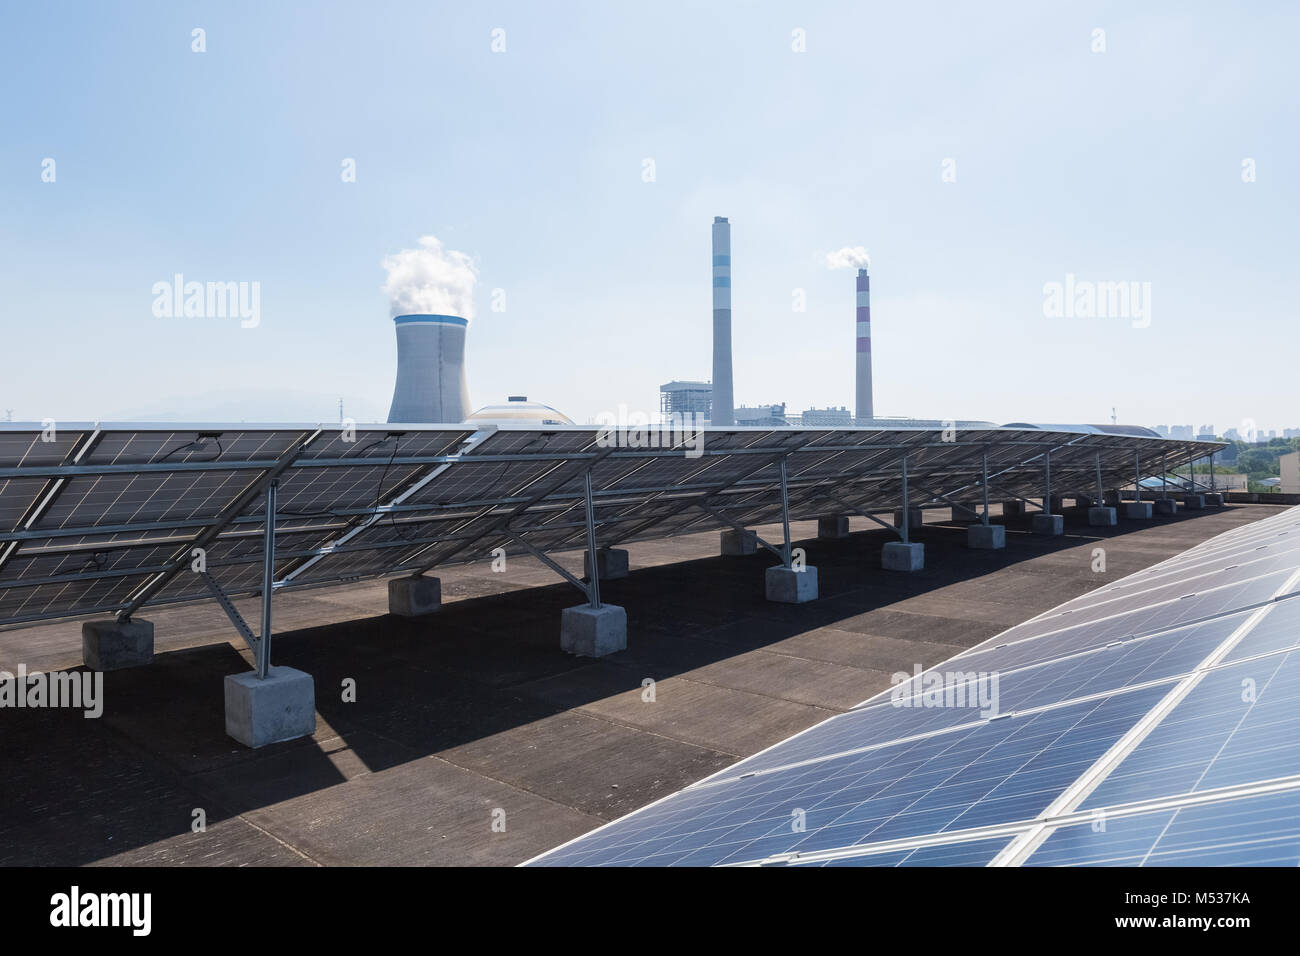 roof solar energy and thermal power plant - Stock Image